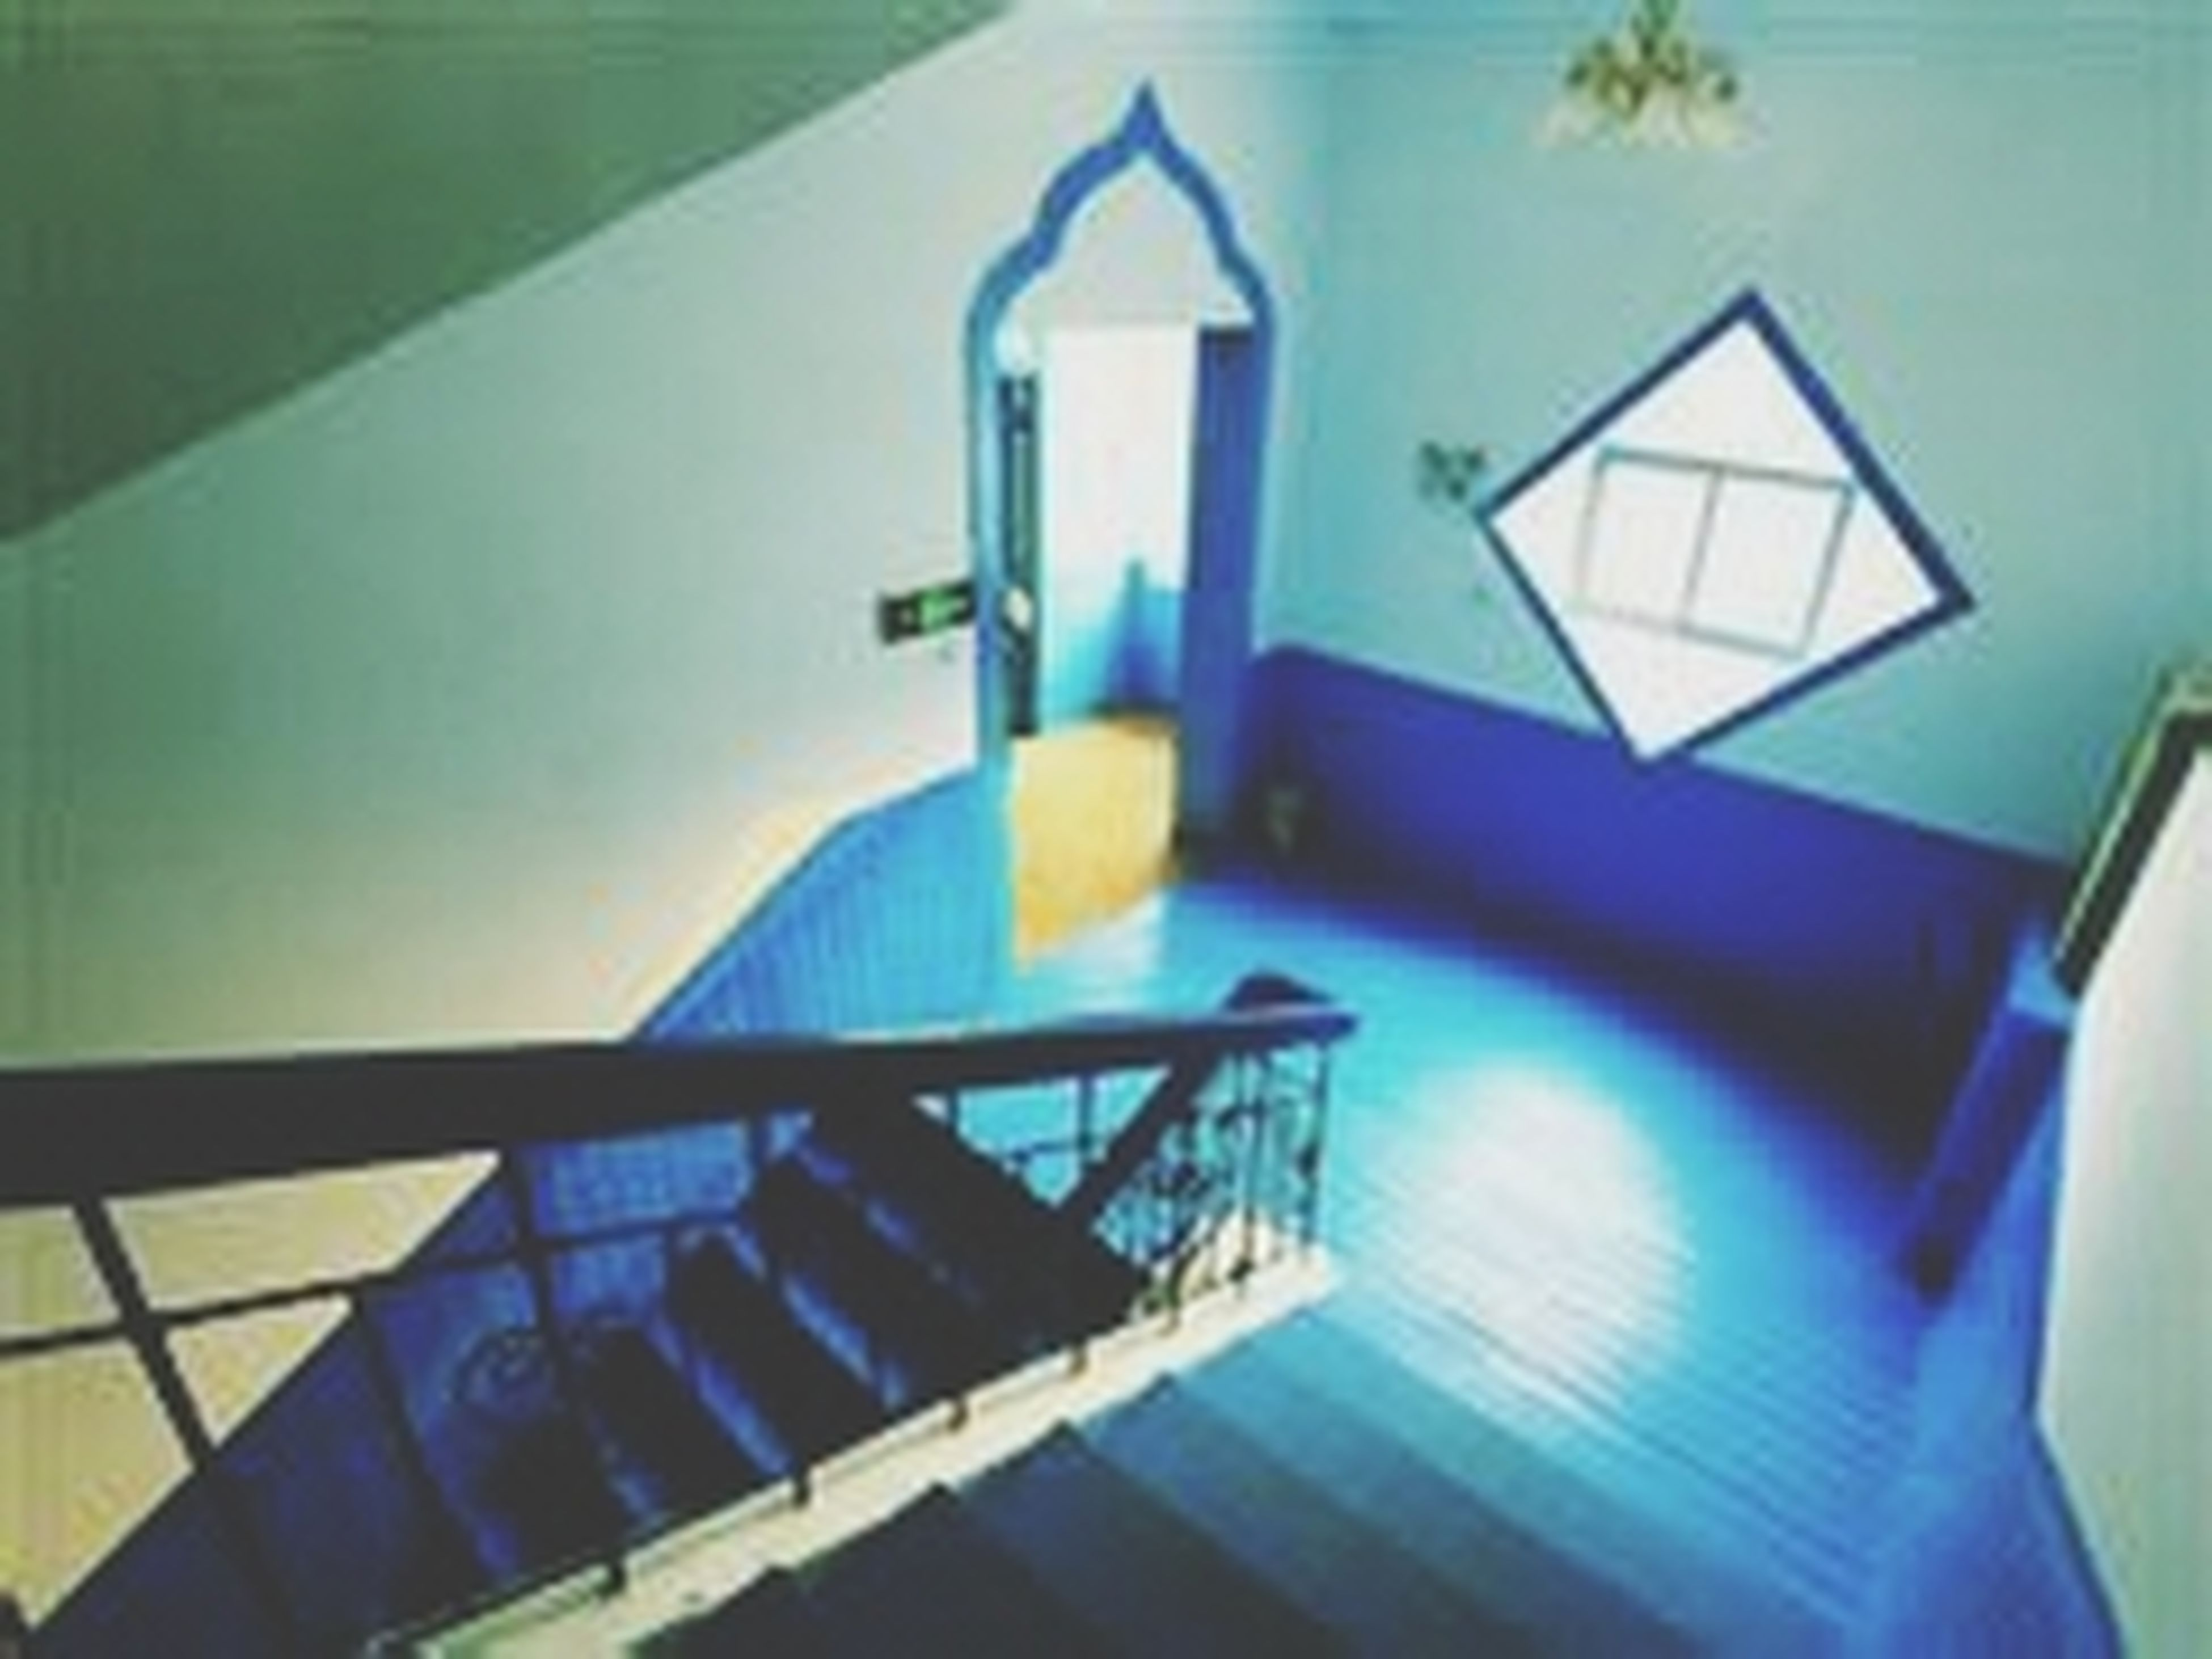 architecture, built structure, building exterior, low angle view, railing, blue, steps, staircase, steps and staircases, window, house, no people, day, building, sunlight, indoors, reflection, balcony, residential structure